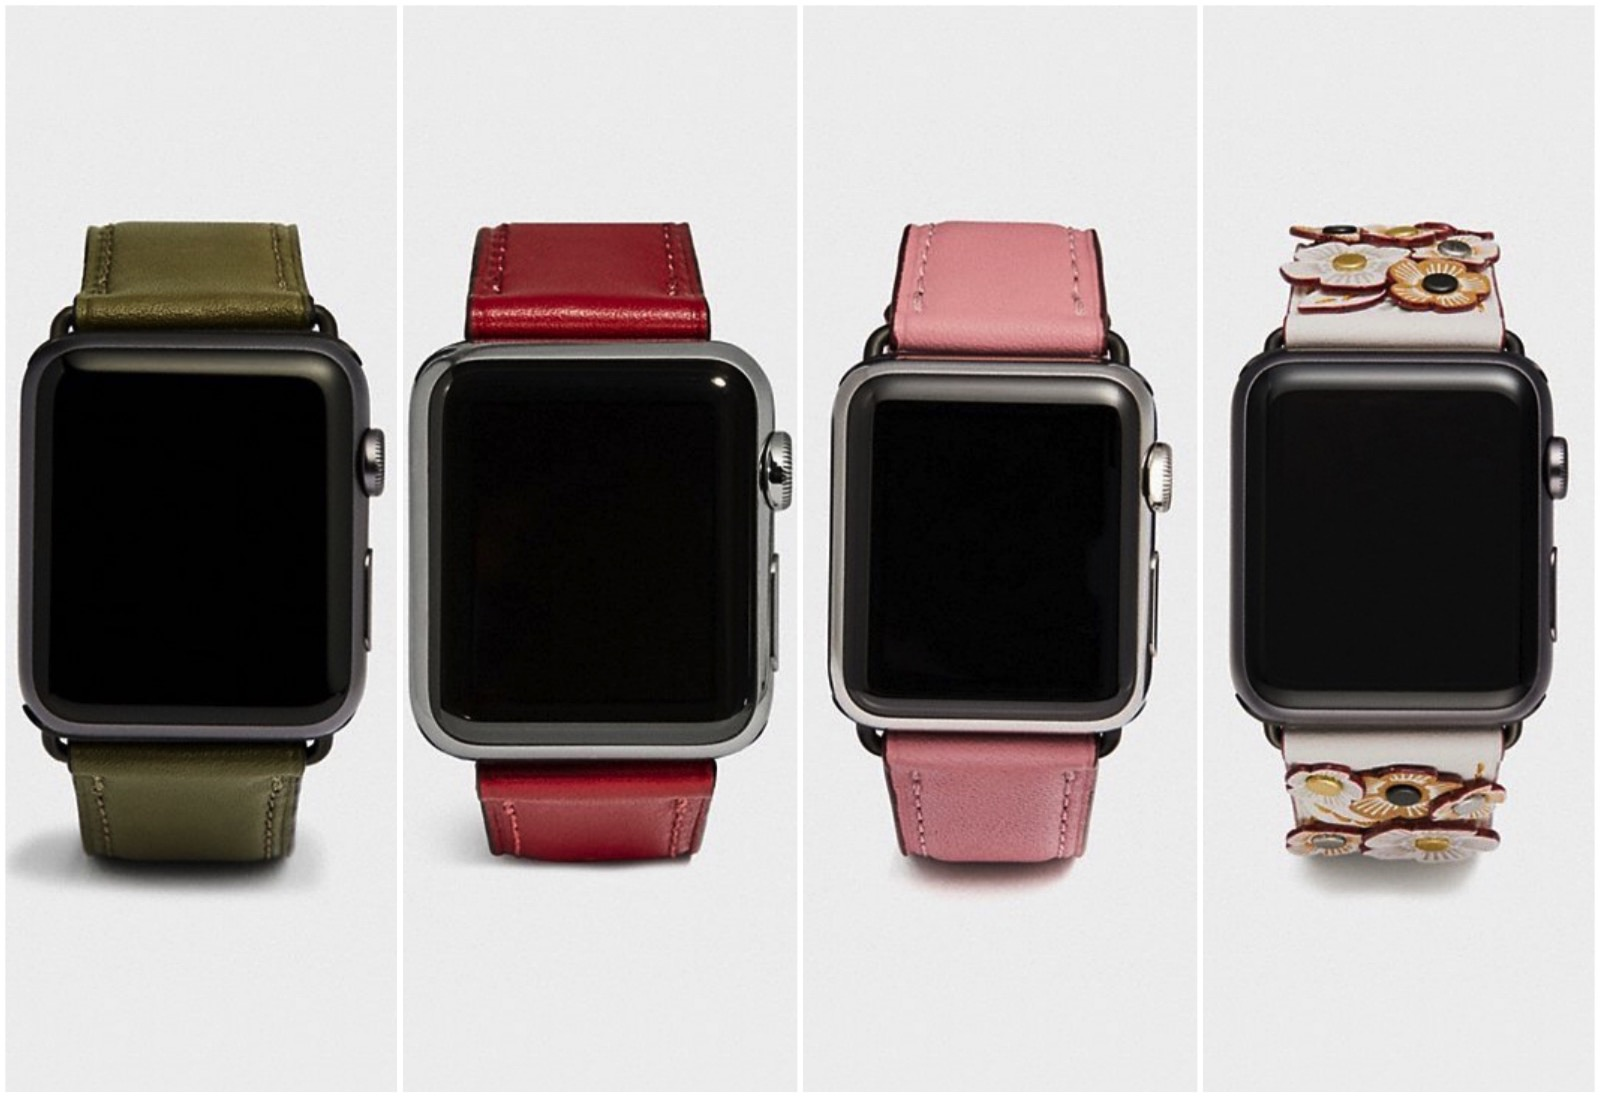 New-COACH-bands-for-apple-watch.jpg